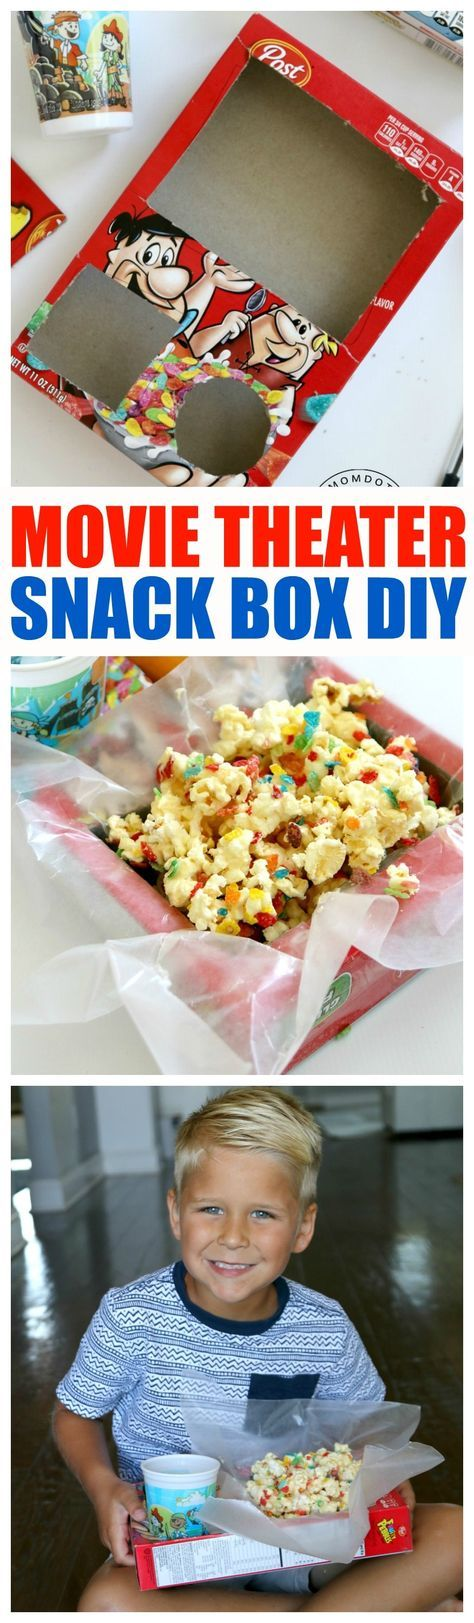 Make your own Movie Theater Snack Box, super quick, super fun, and super awesome DIY craft to make your own movie theater snack box in 5 minutes